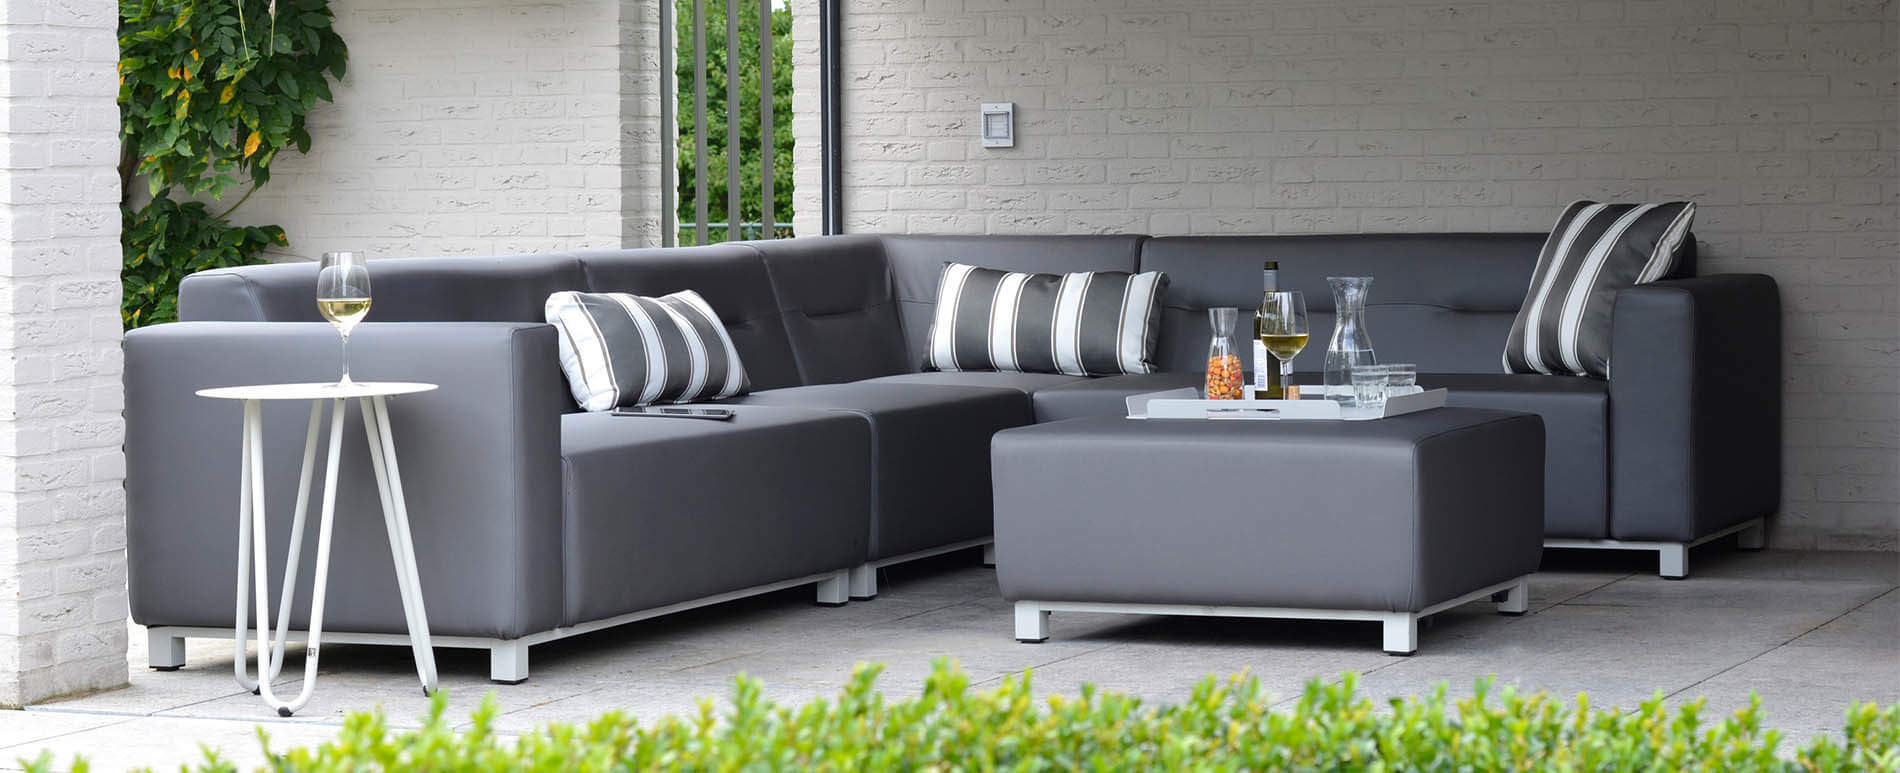 das ultimative lounge feeling lounge sofa f r die terrasse oder garten. Black Bedroom Furniture Sets. Home Design Ideas